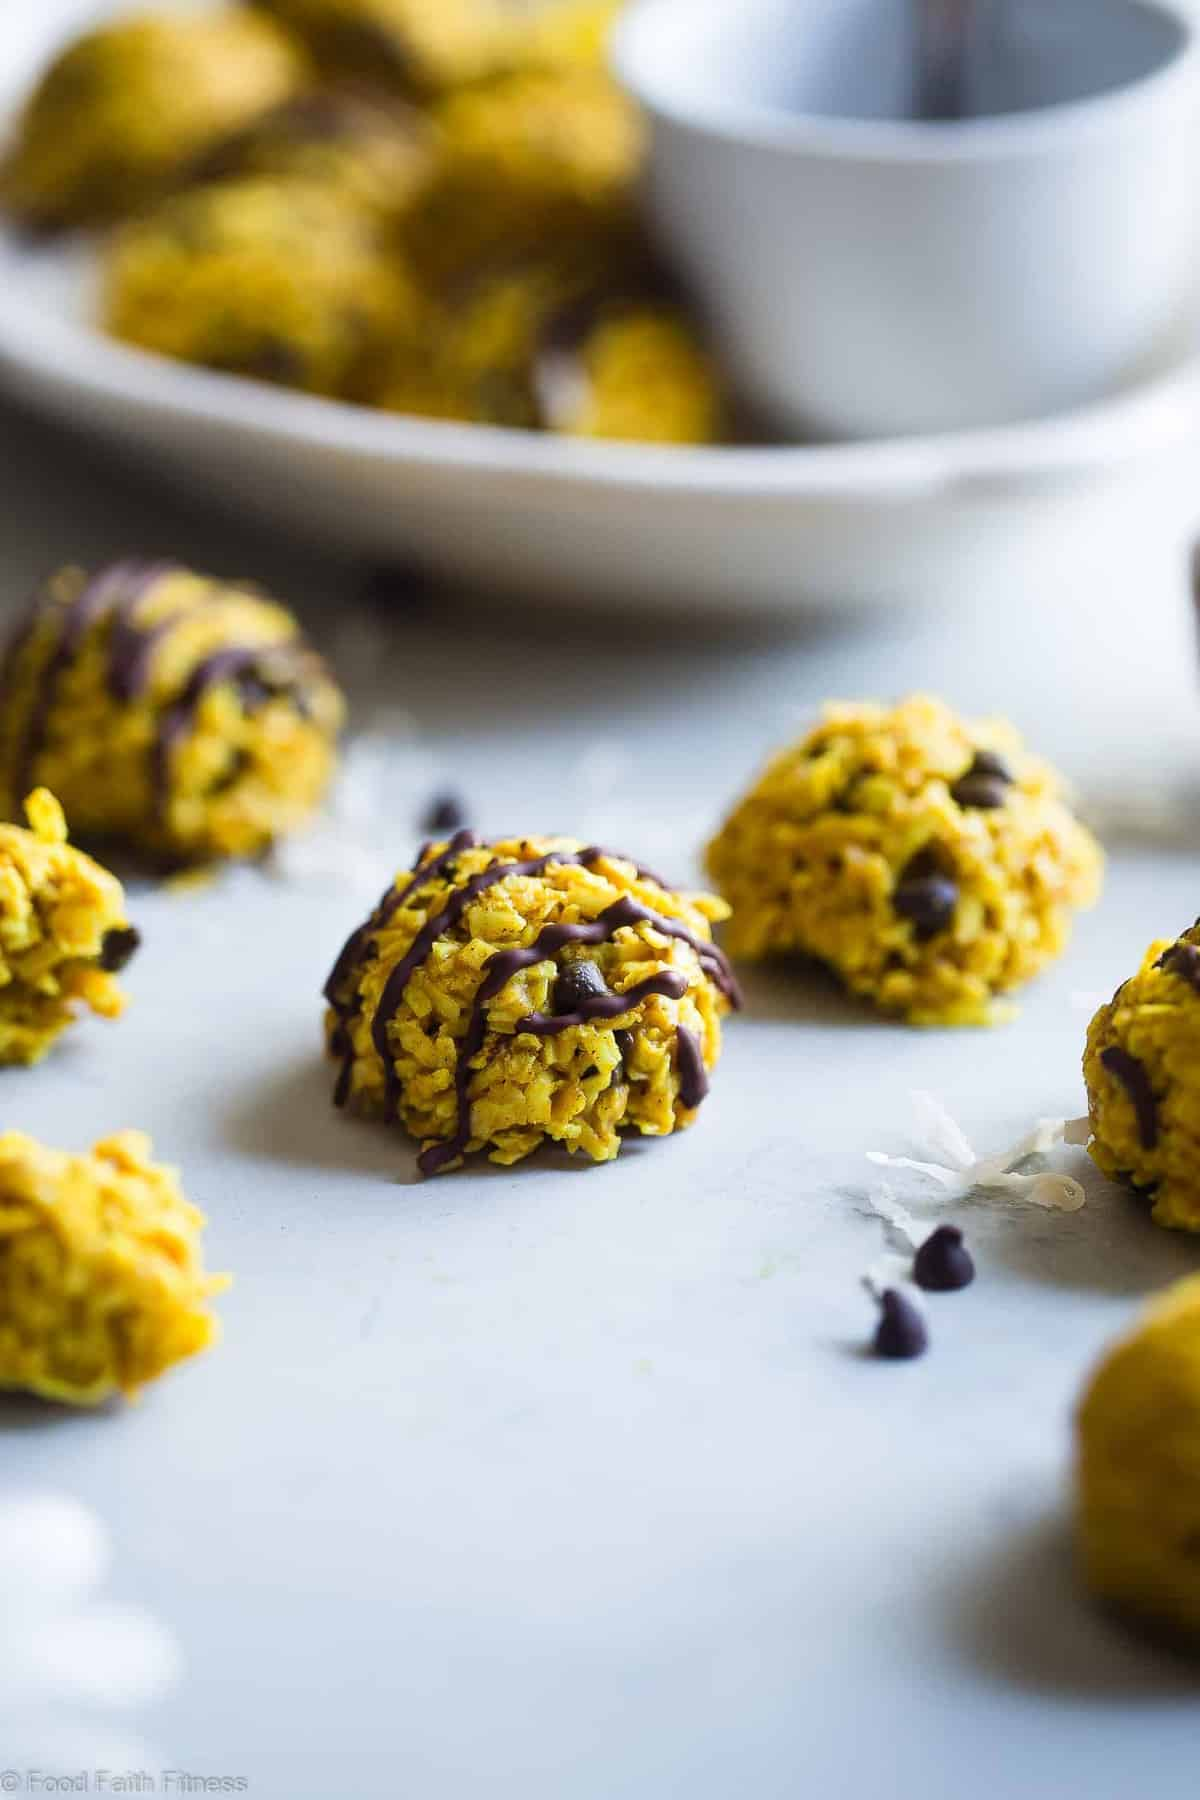 Healthy No Bake Cookies with Coconut Oil -  These easy, 6 ingredient cookies have addicting spicy-sweet flavors from turmeric, almond butter and chocolate chips! They're a paleo, vegan and gluten free treat that is secretly anti-inflammatory! | #Foodfaithfitness | #Paleo #Vegan #Glutenfree #Dairyfree #Healthy